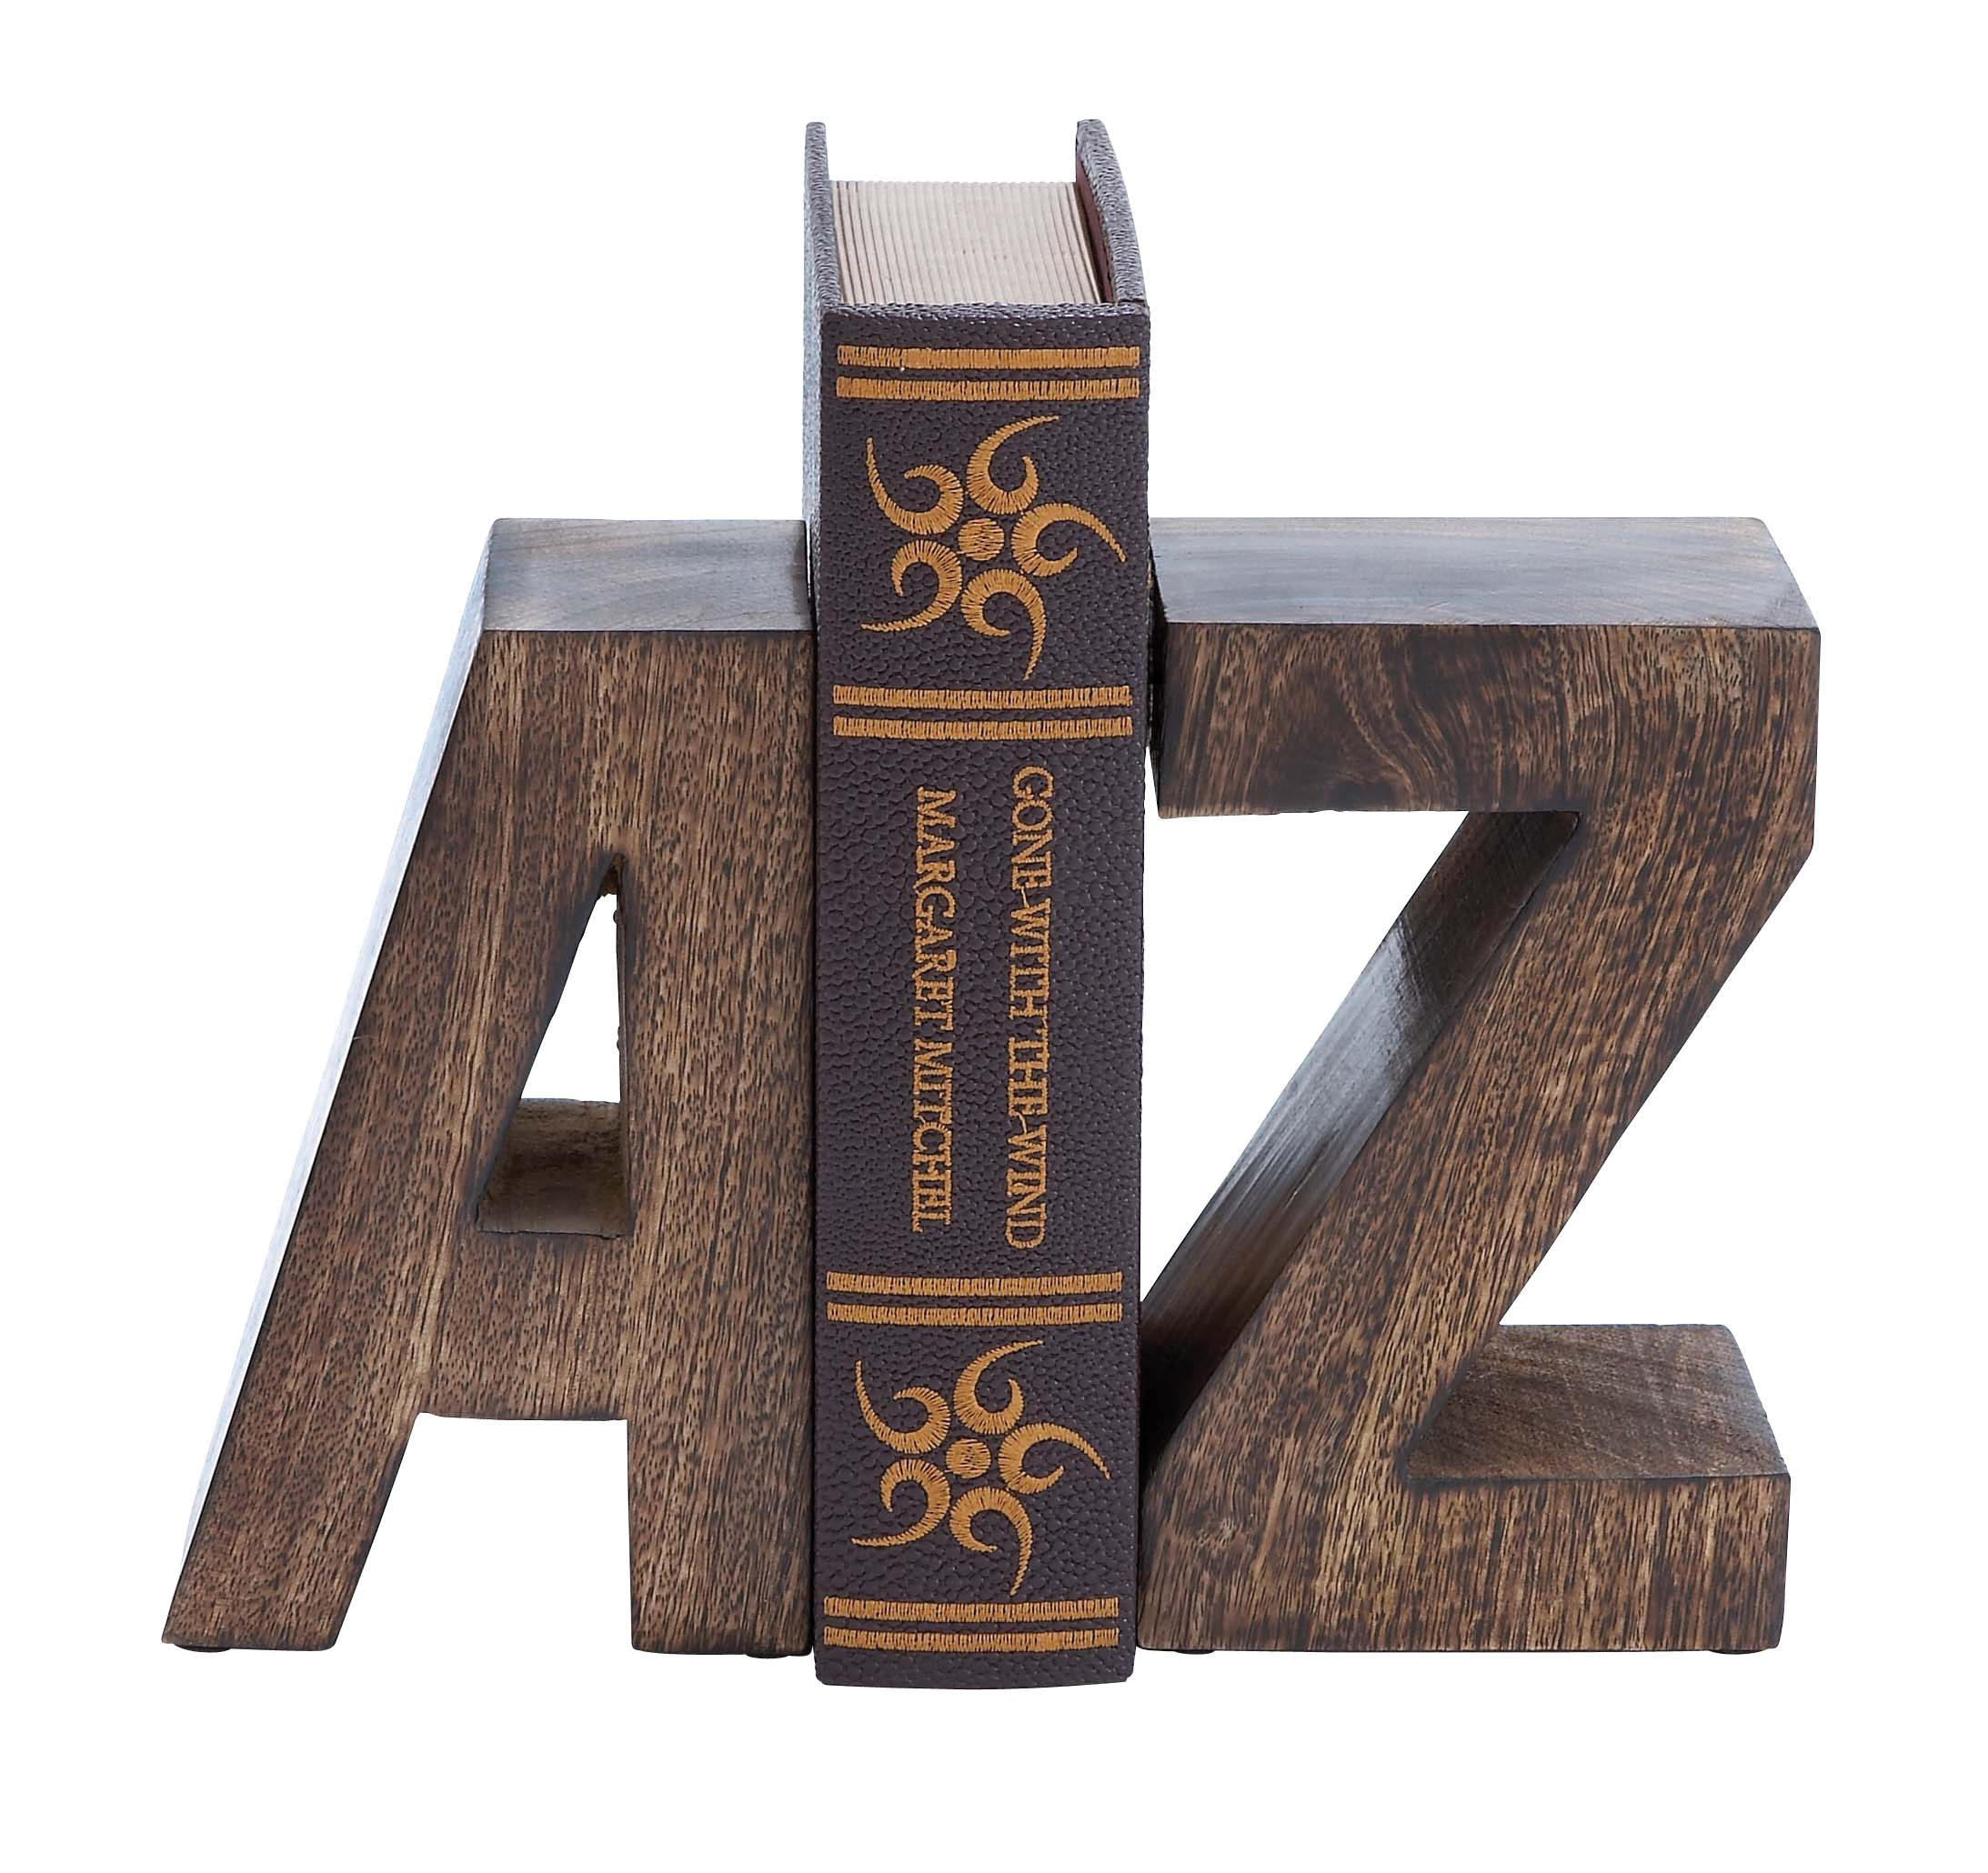 Wood Book End Pair With Wood Grain Design